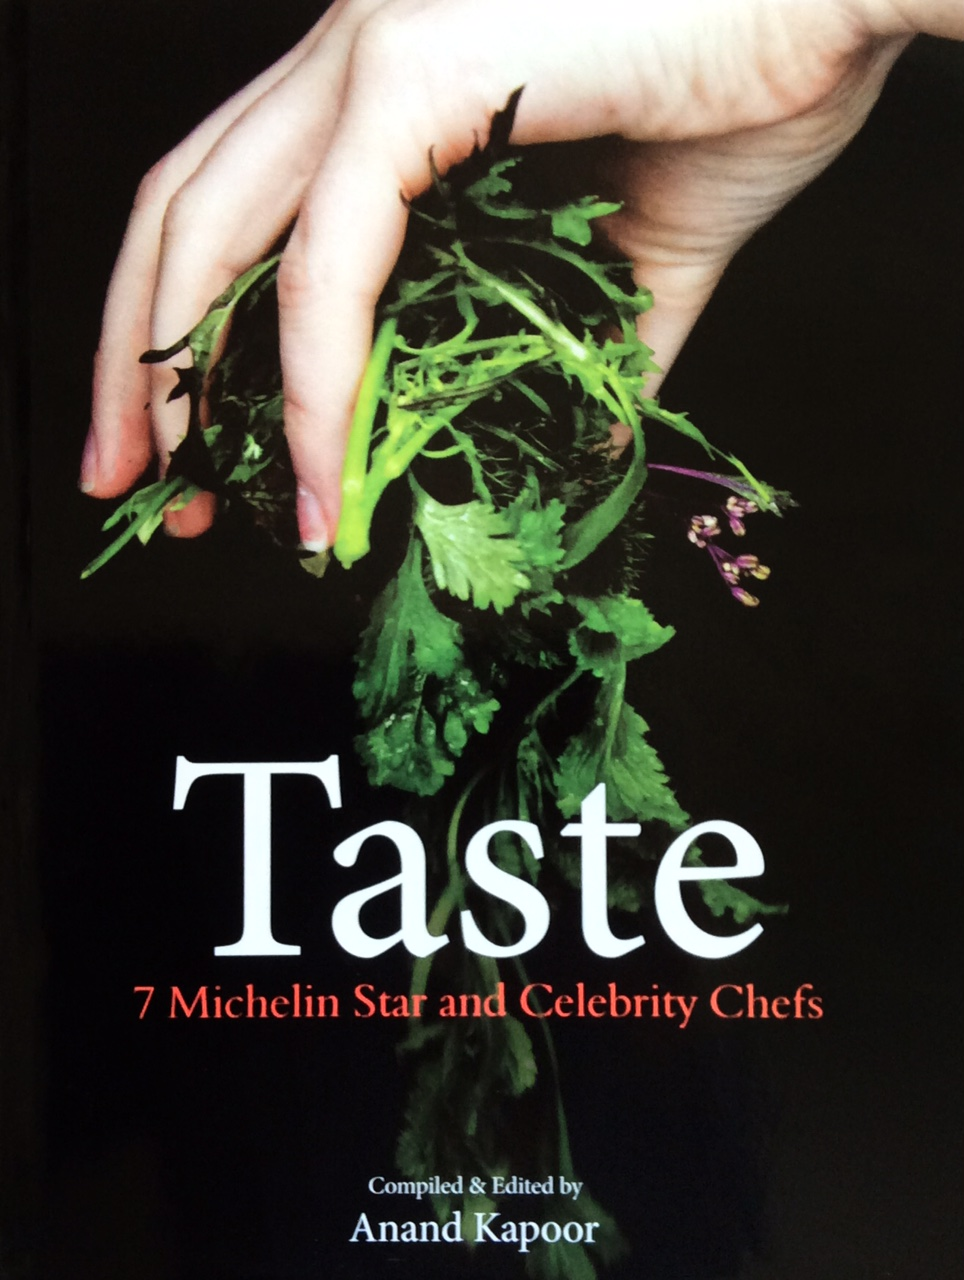 TASTE COOKBOOK A selection of recipes from Chefs around the world